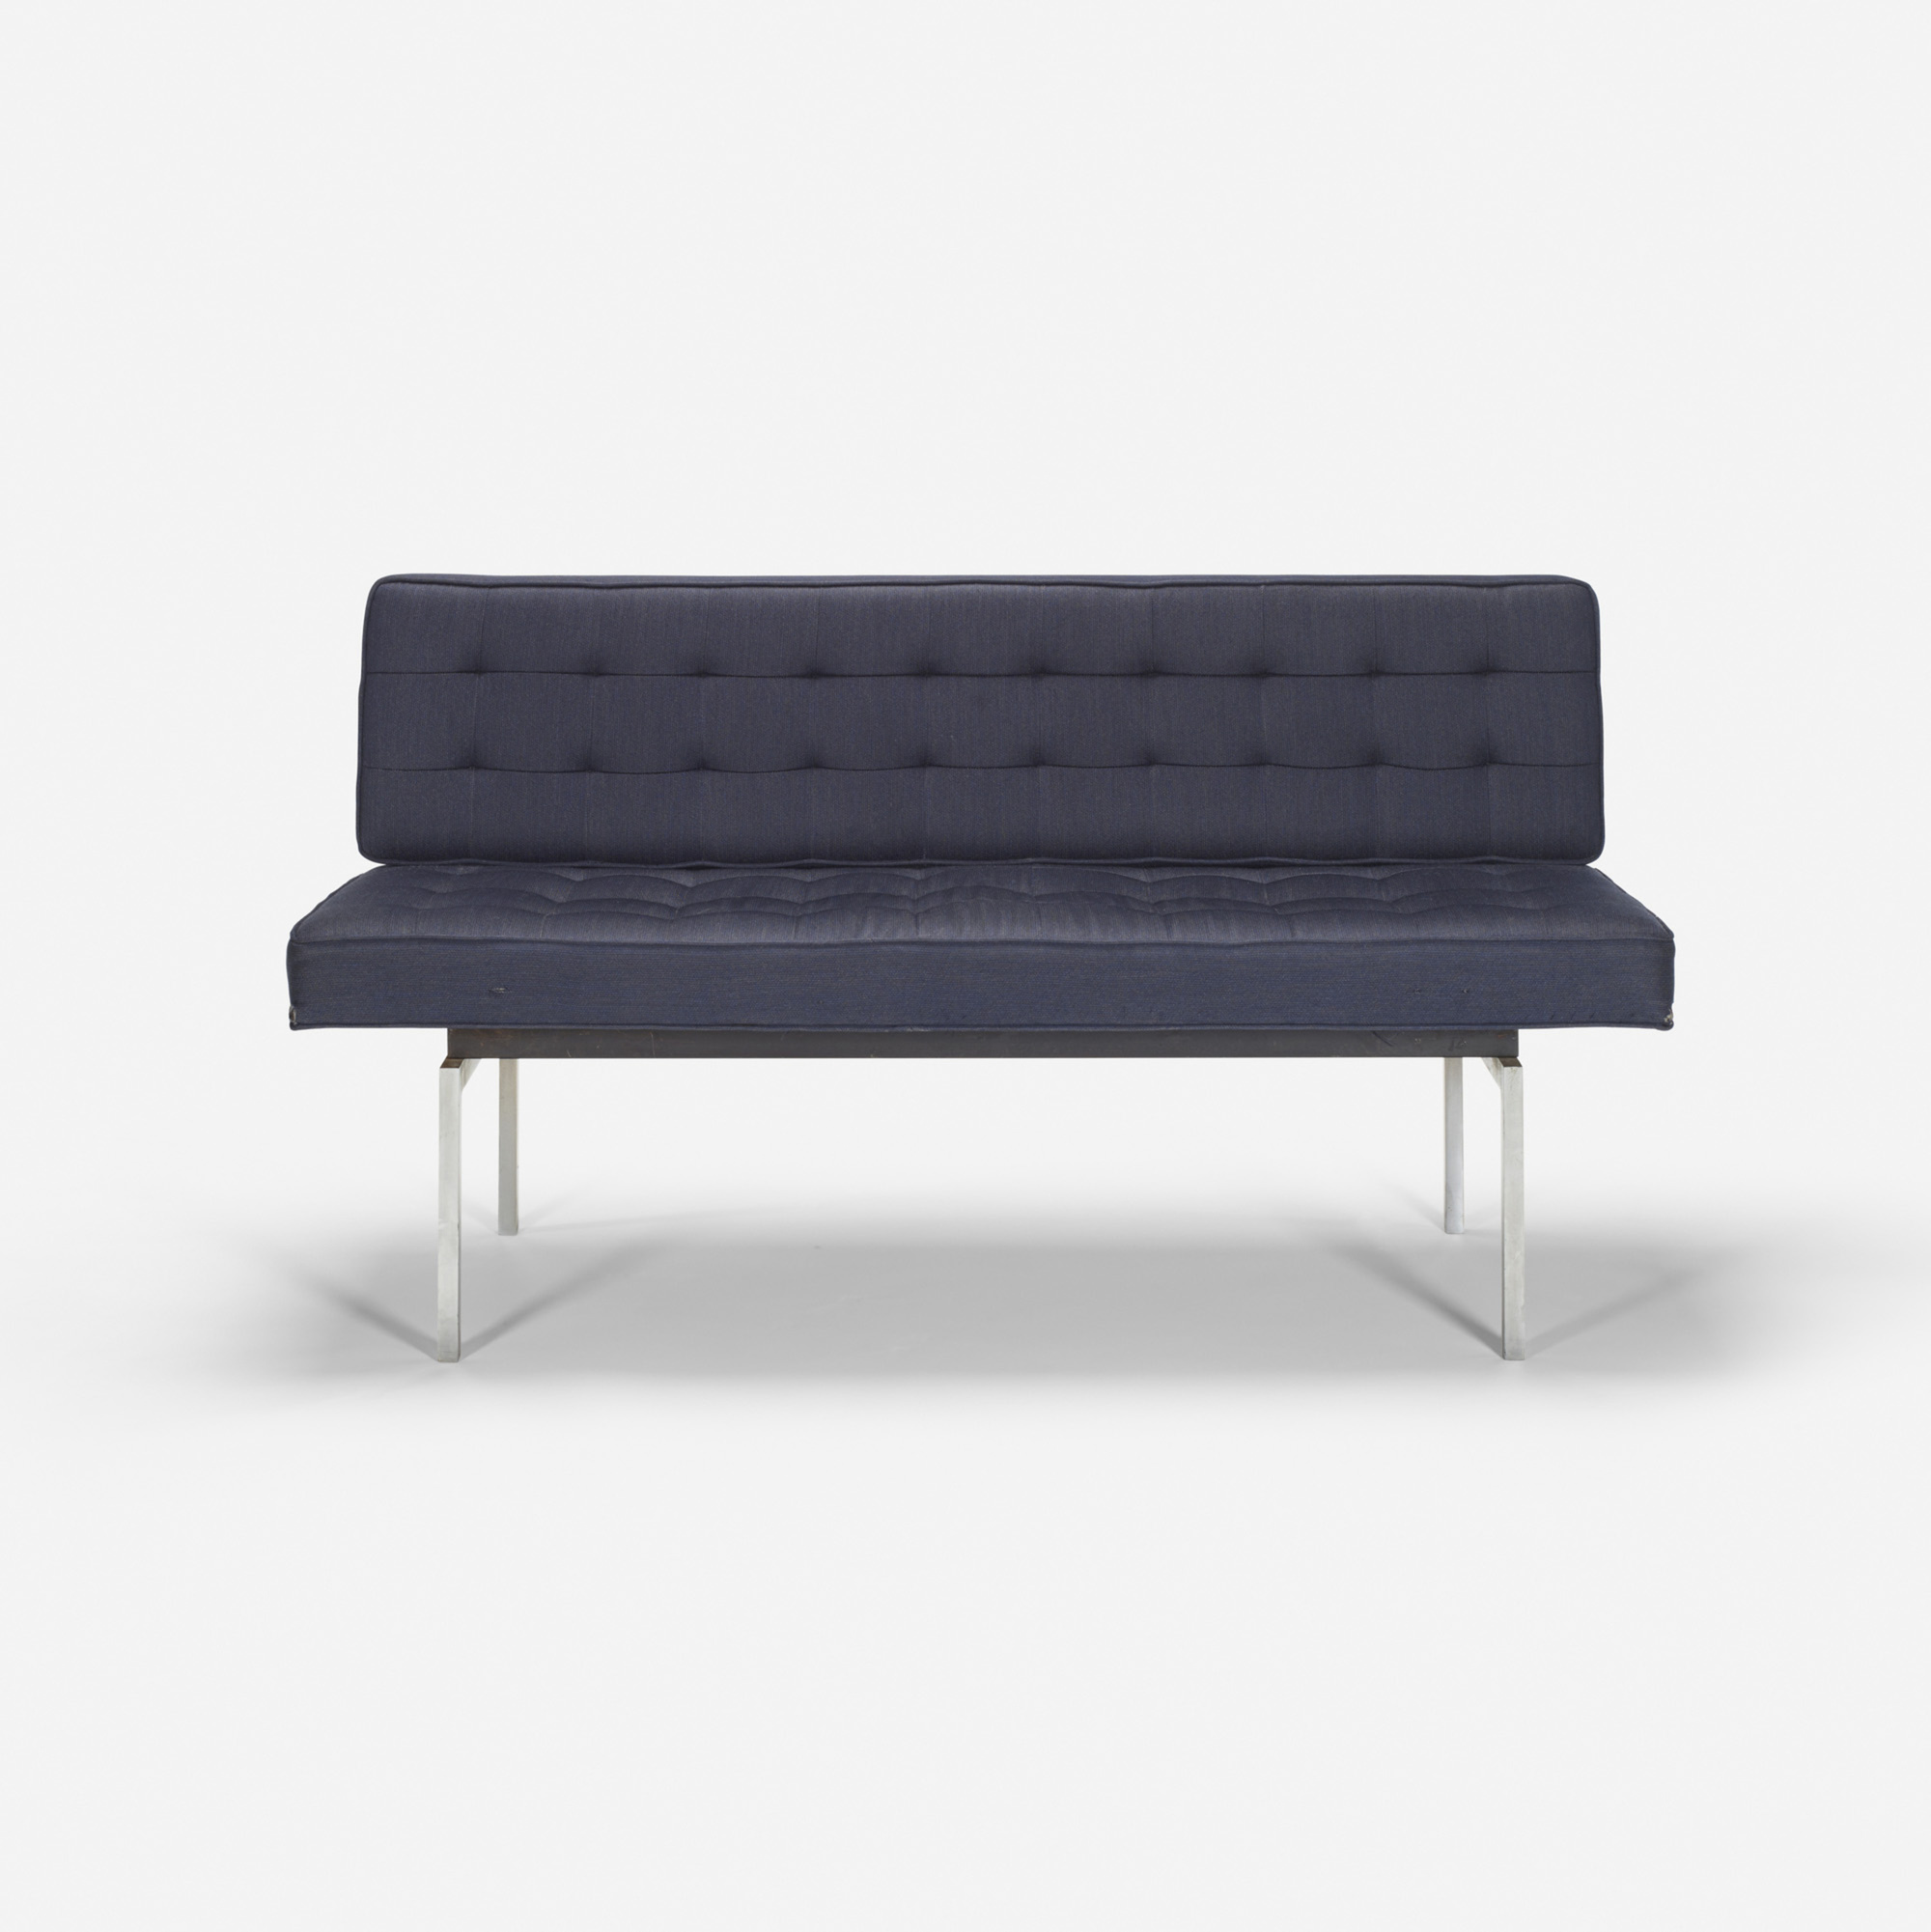 532: Philip Johnson Associates / Banquette 14 from the Pool Room (1 of 1)